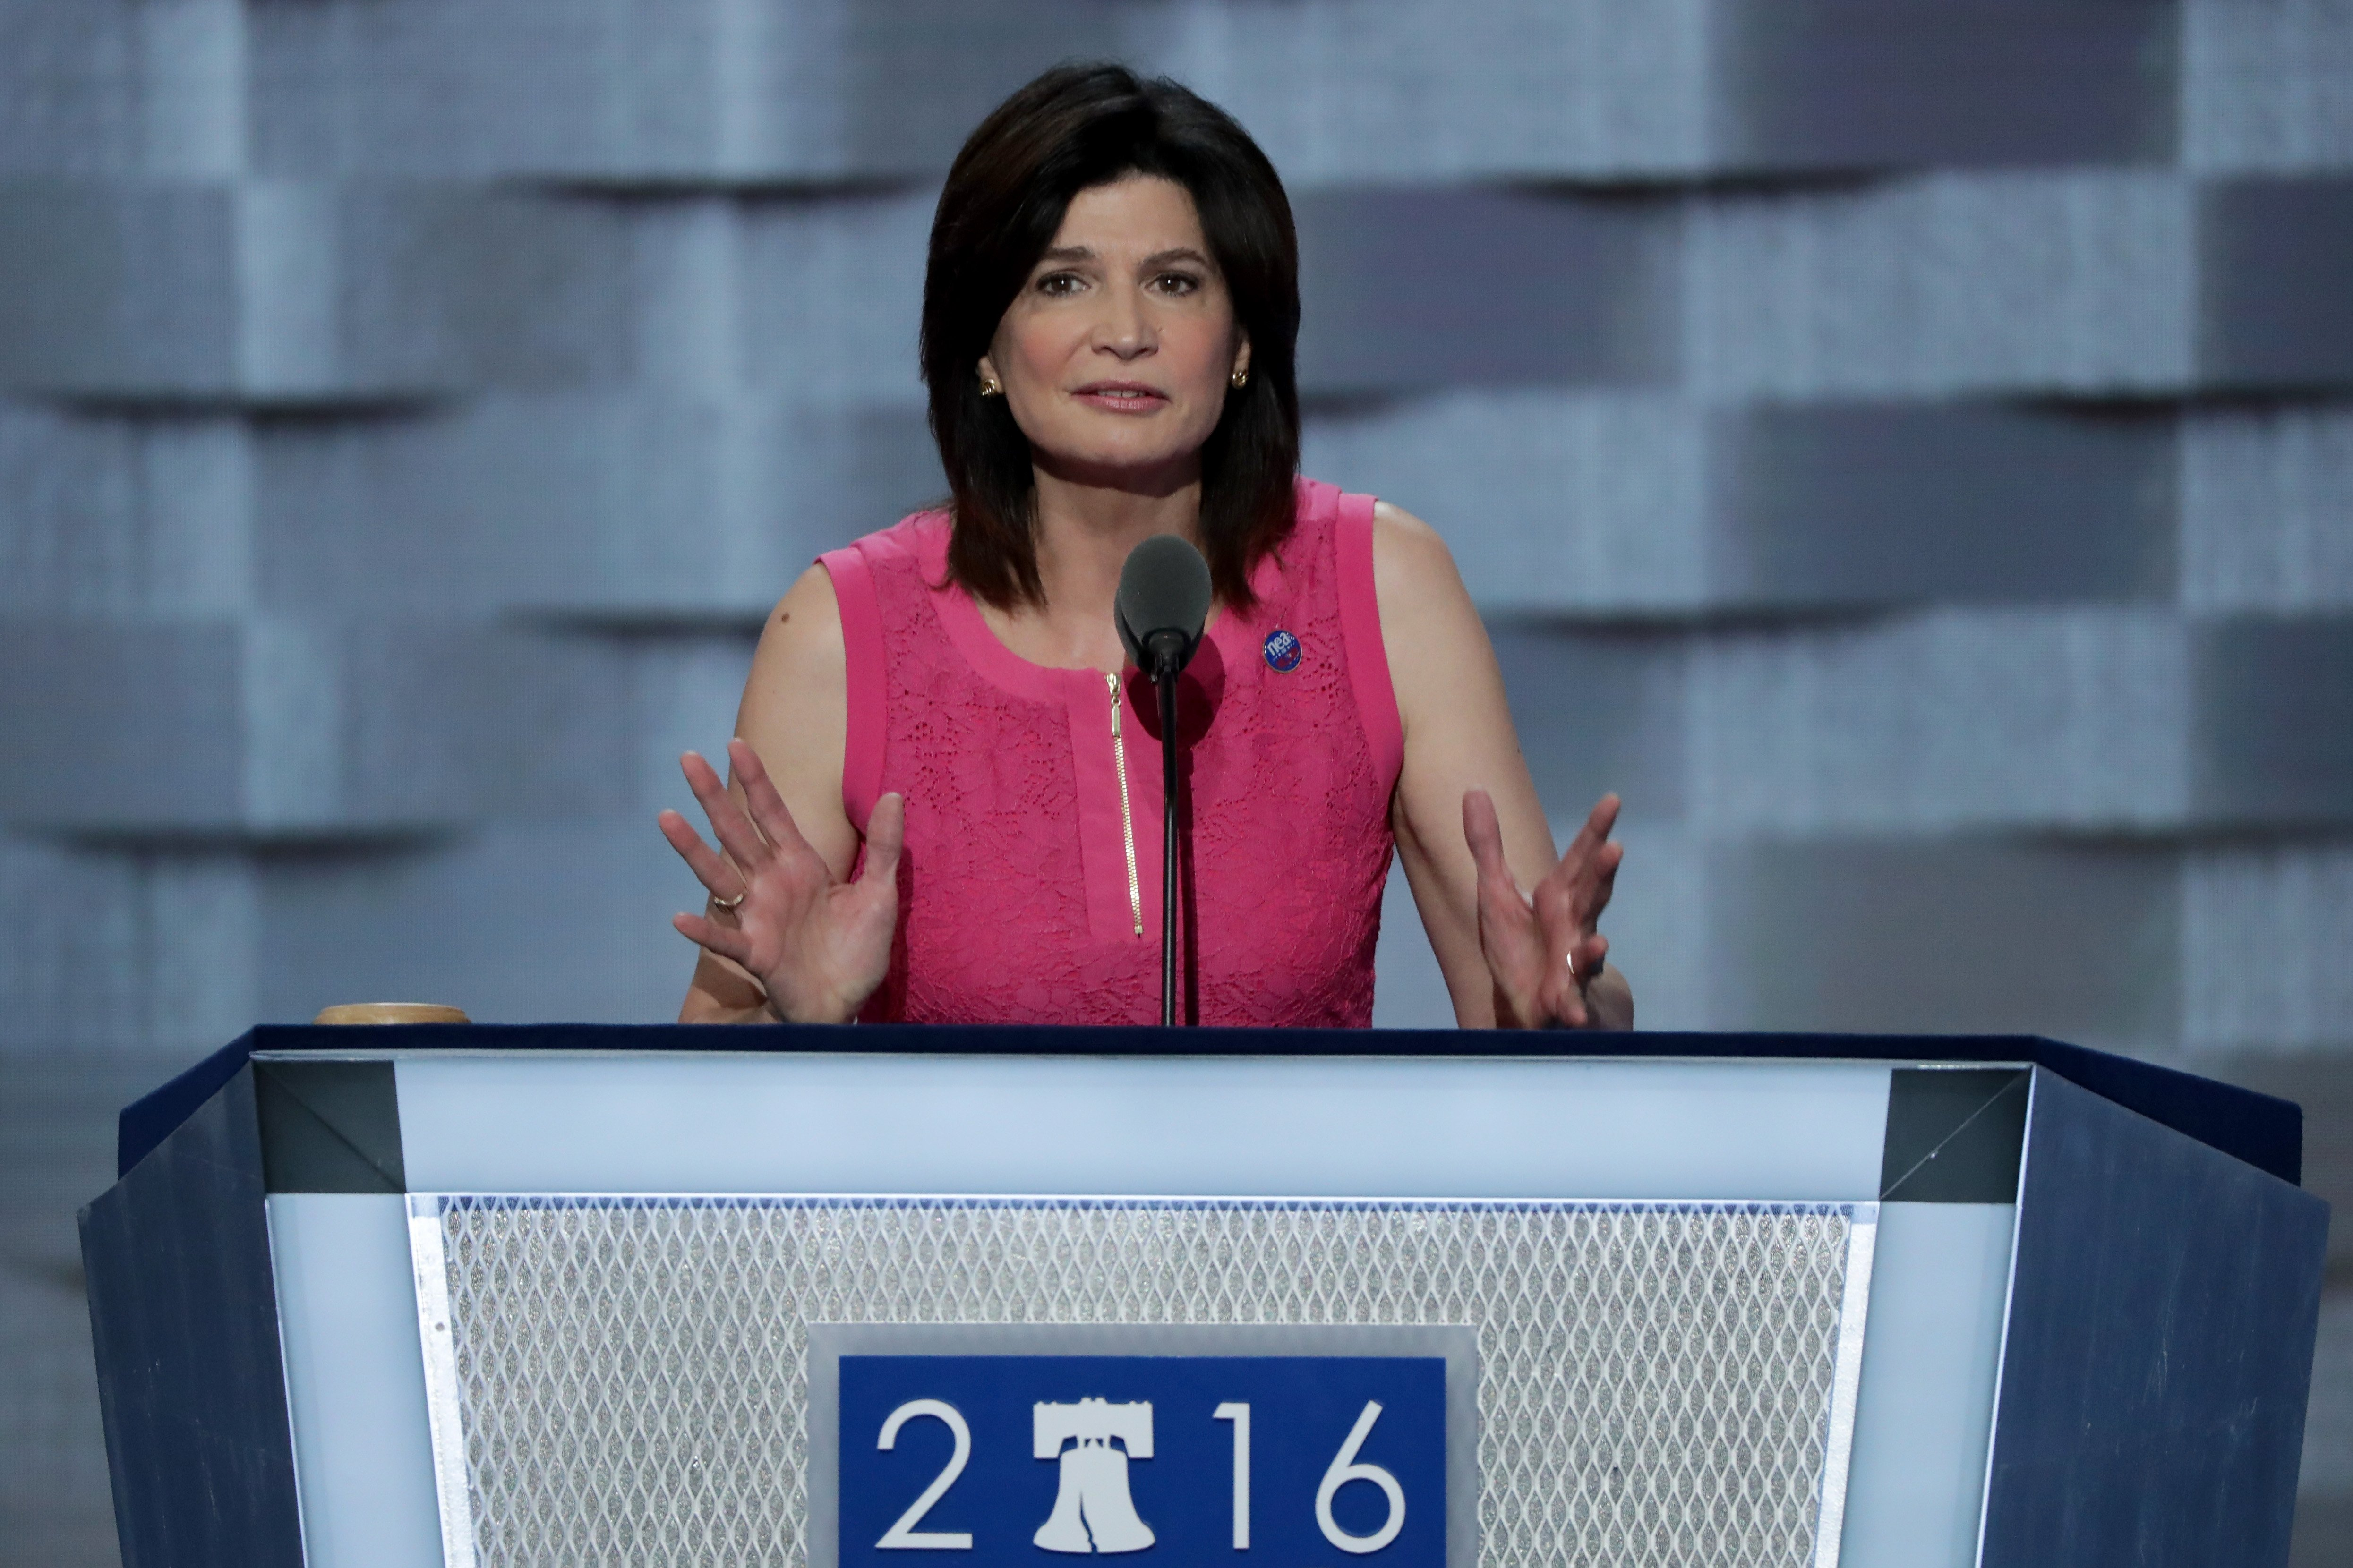 Lily Eskelsen Garcia, president of the National Education Association, delivers remarks on the first day of the Democratic National Convention at the Wells Fargo Center on July 25, 2016 in Philadelphia.